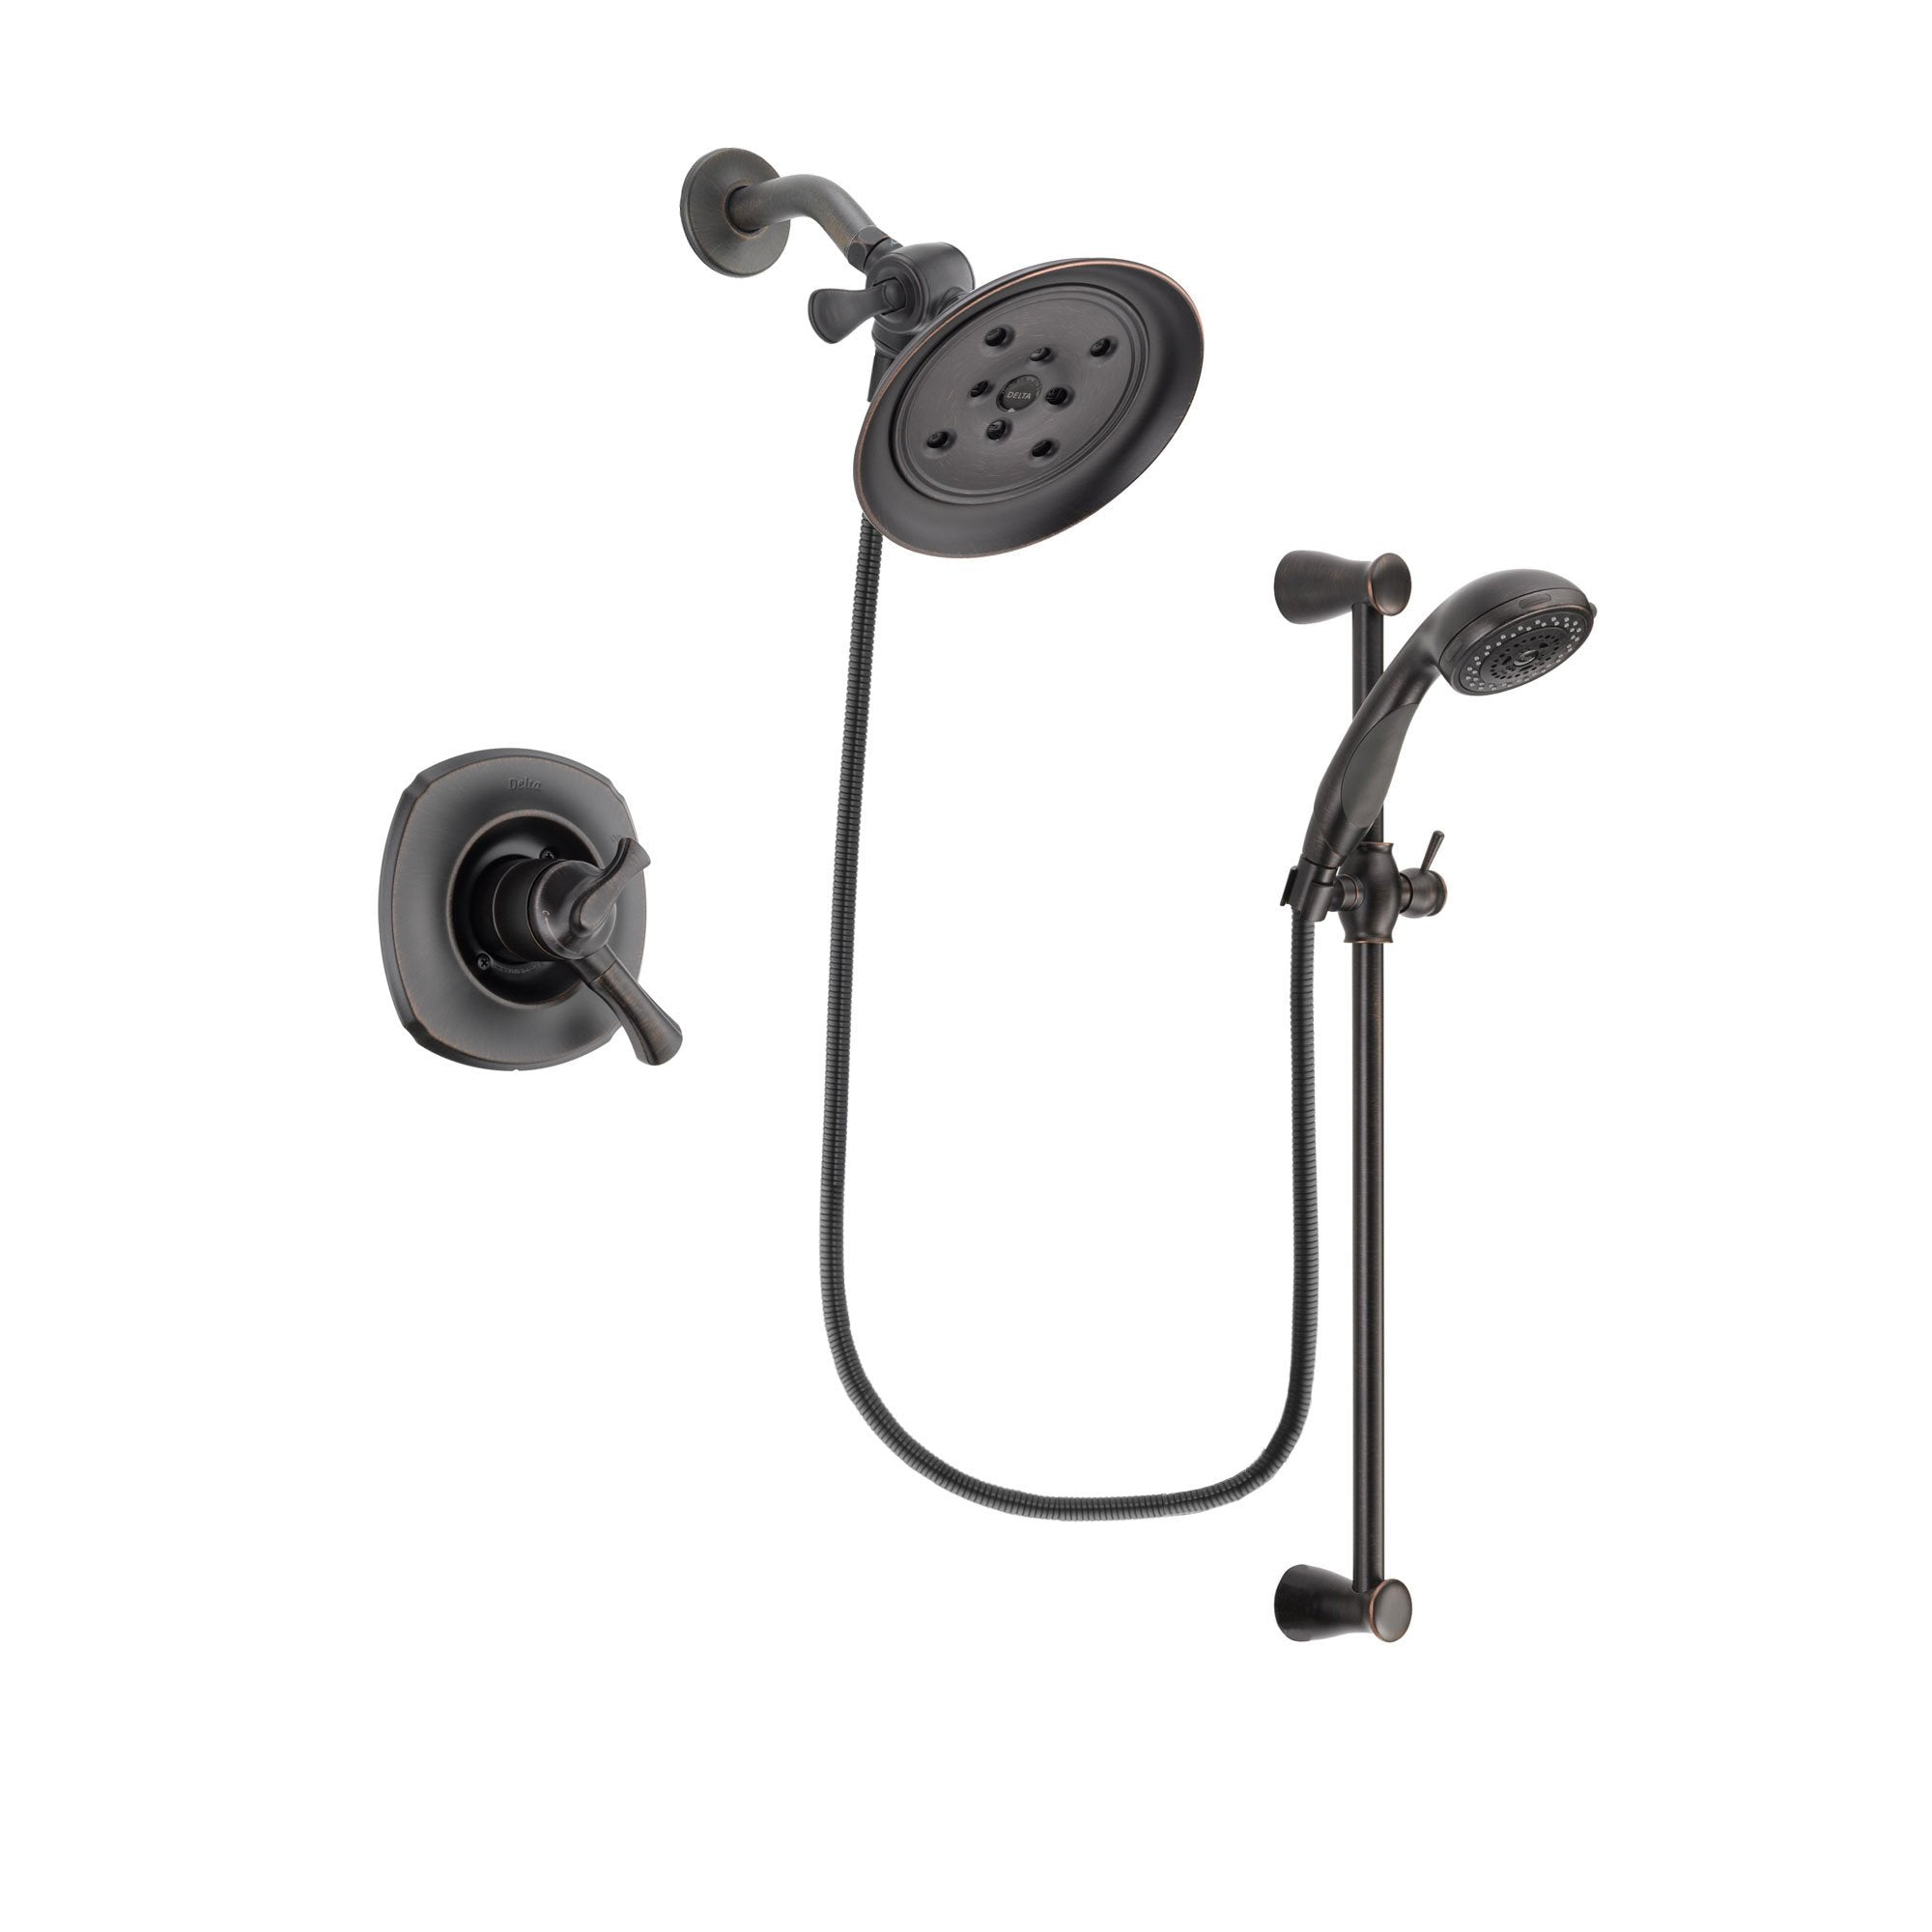 Delta Addison Venetian Bronze Shower Faucet System with Hand Shower DSP2706V